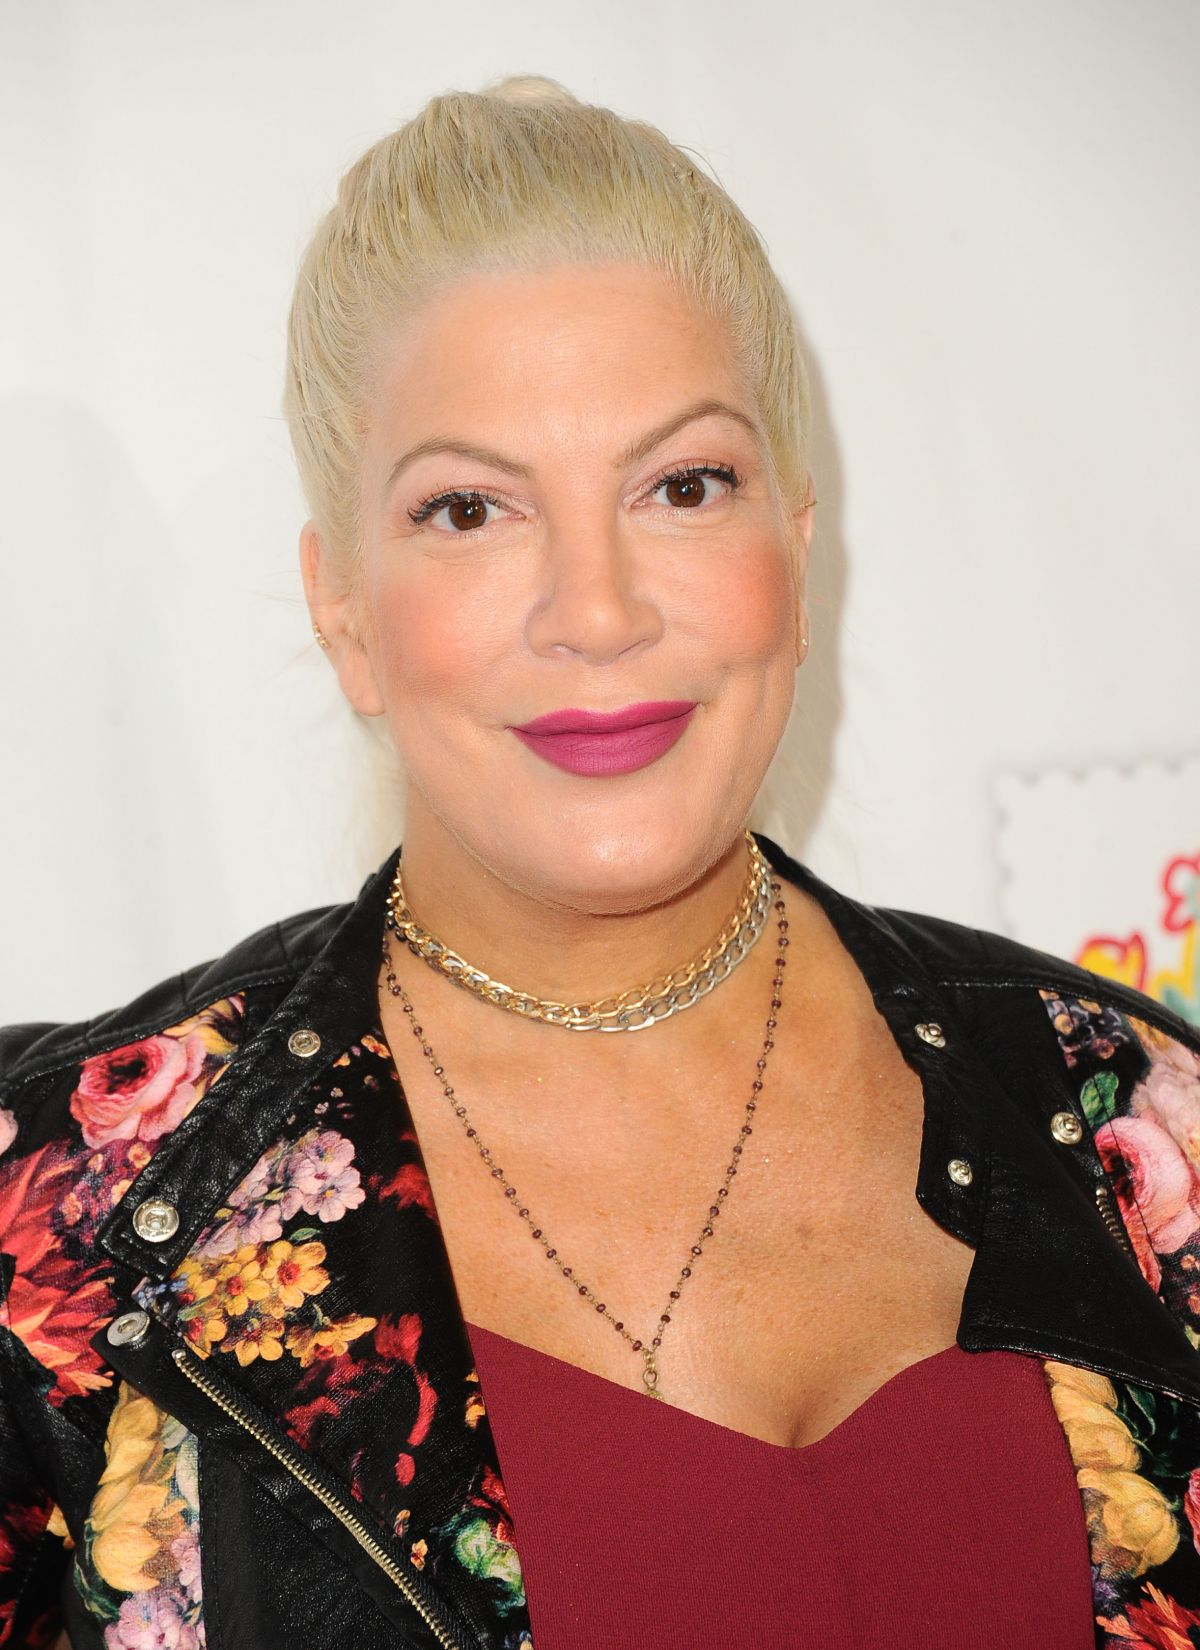 Tori Spelling Attends the Elizabeth Glaser Pediatric Aids Foundation in Culver City